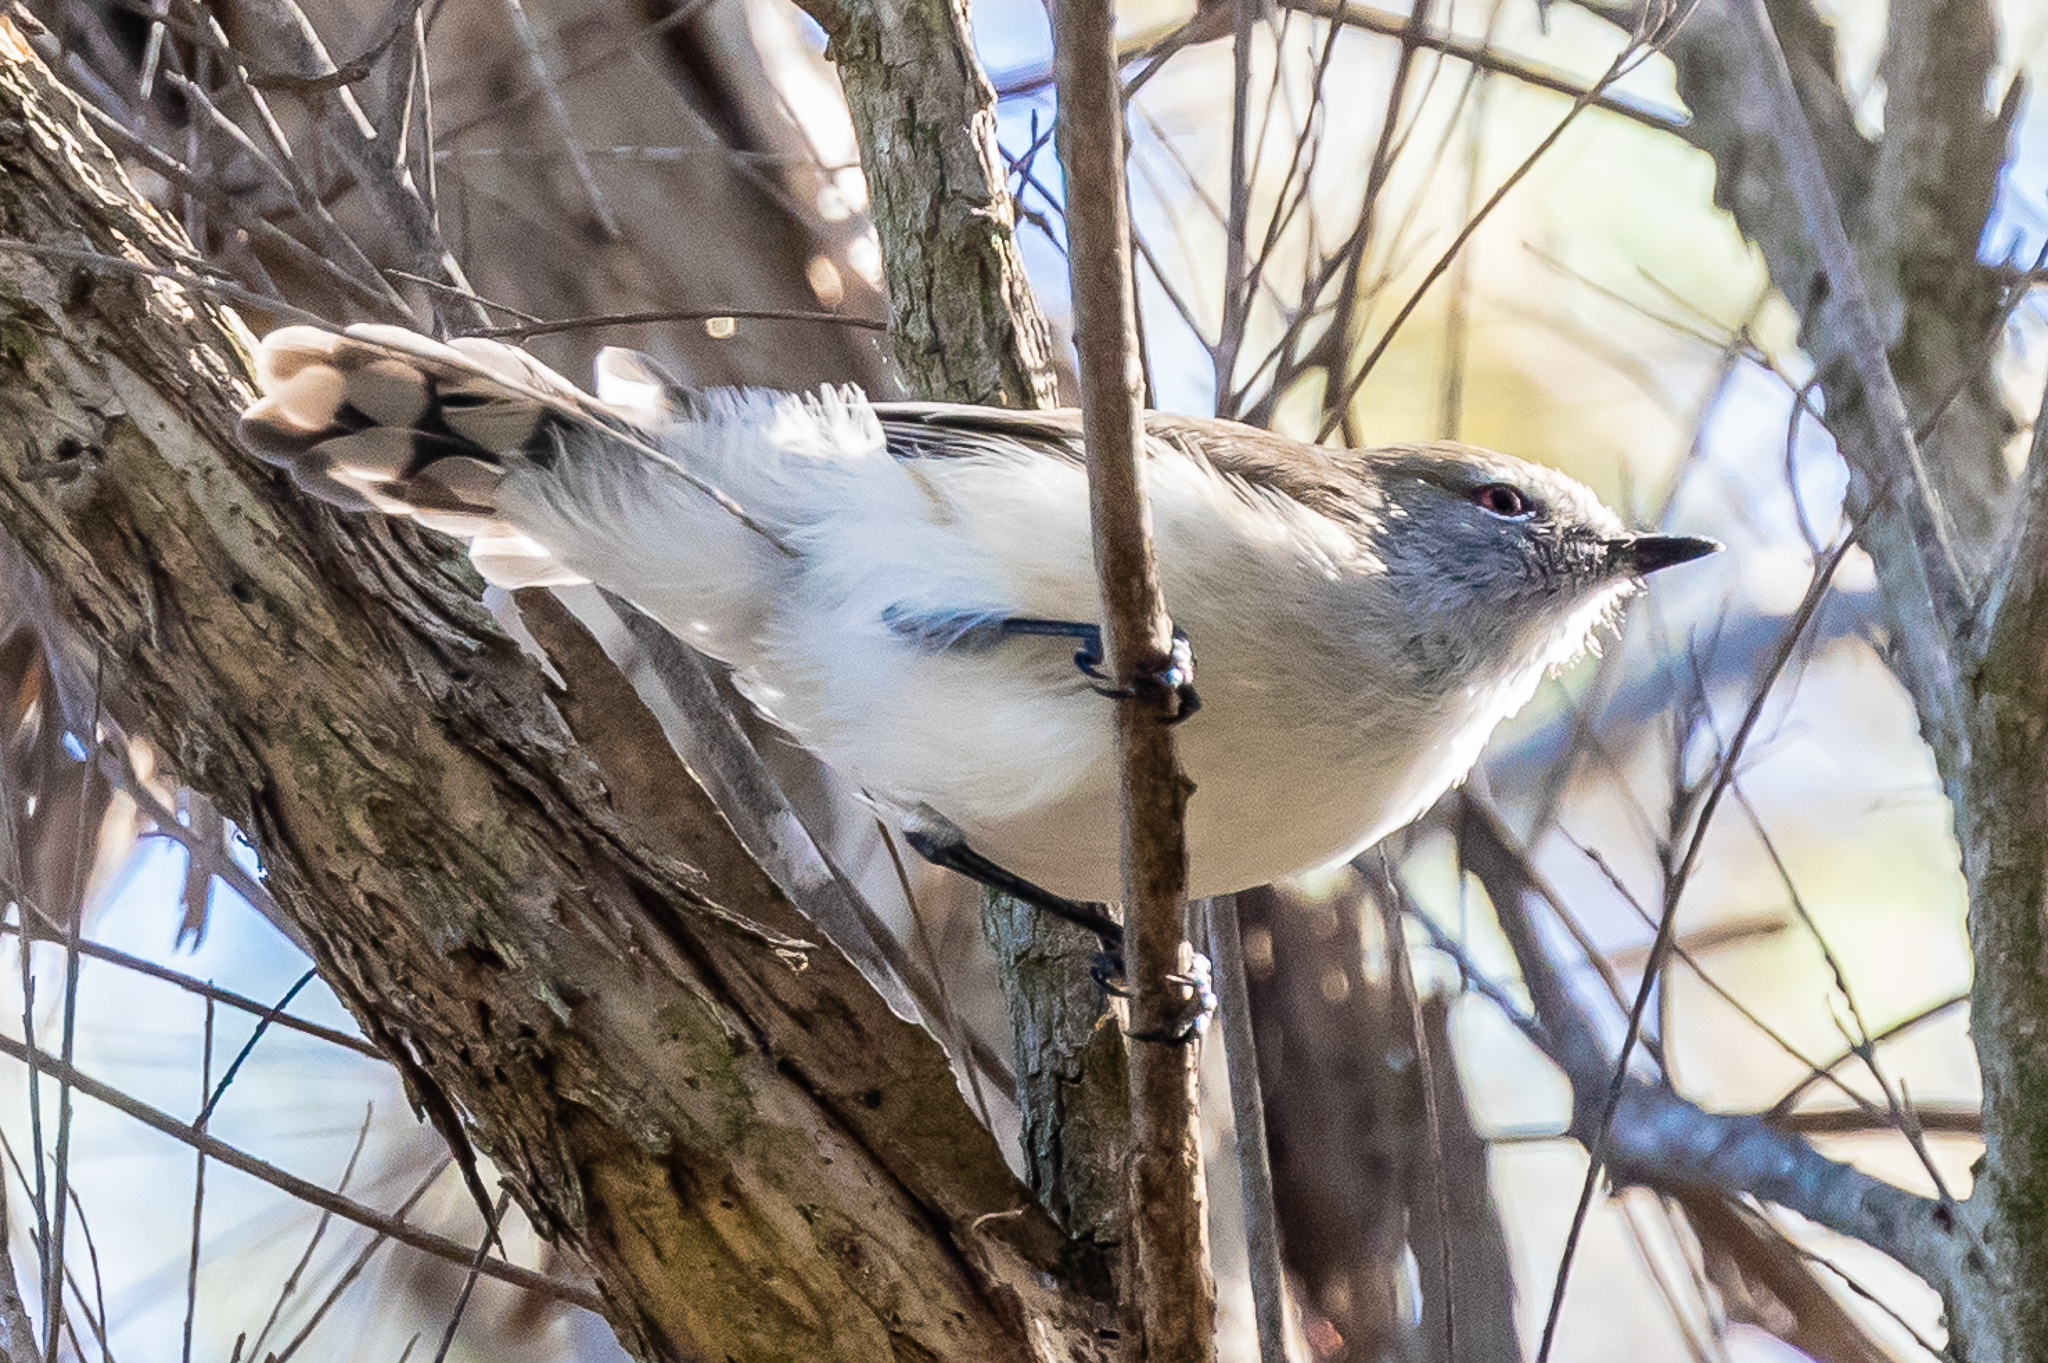 This Western Gerygone (11 cm) was seen on the Olive Seymour boardwalk at Herdsman Lake.